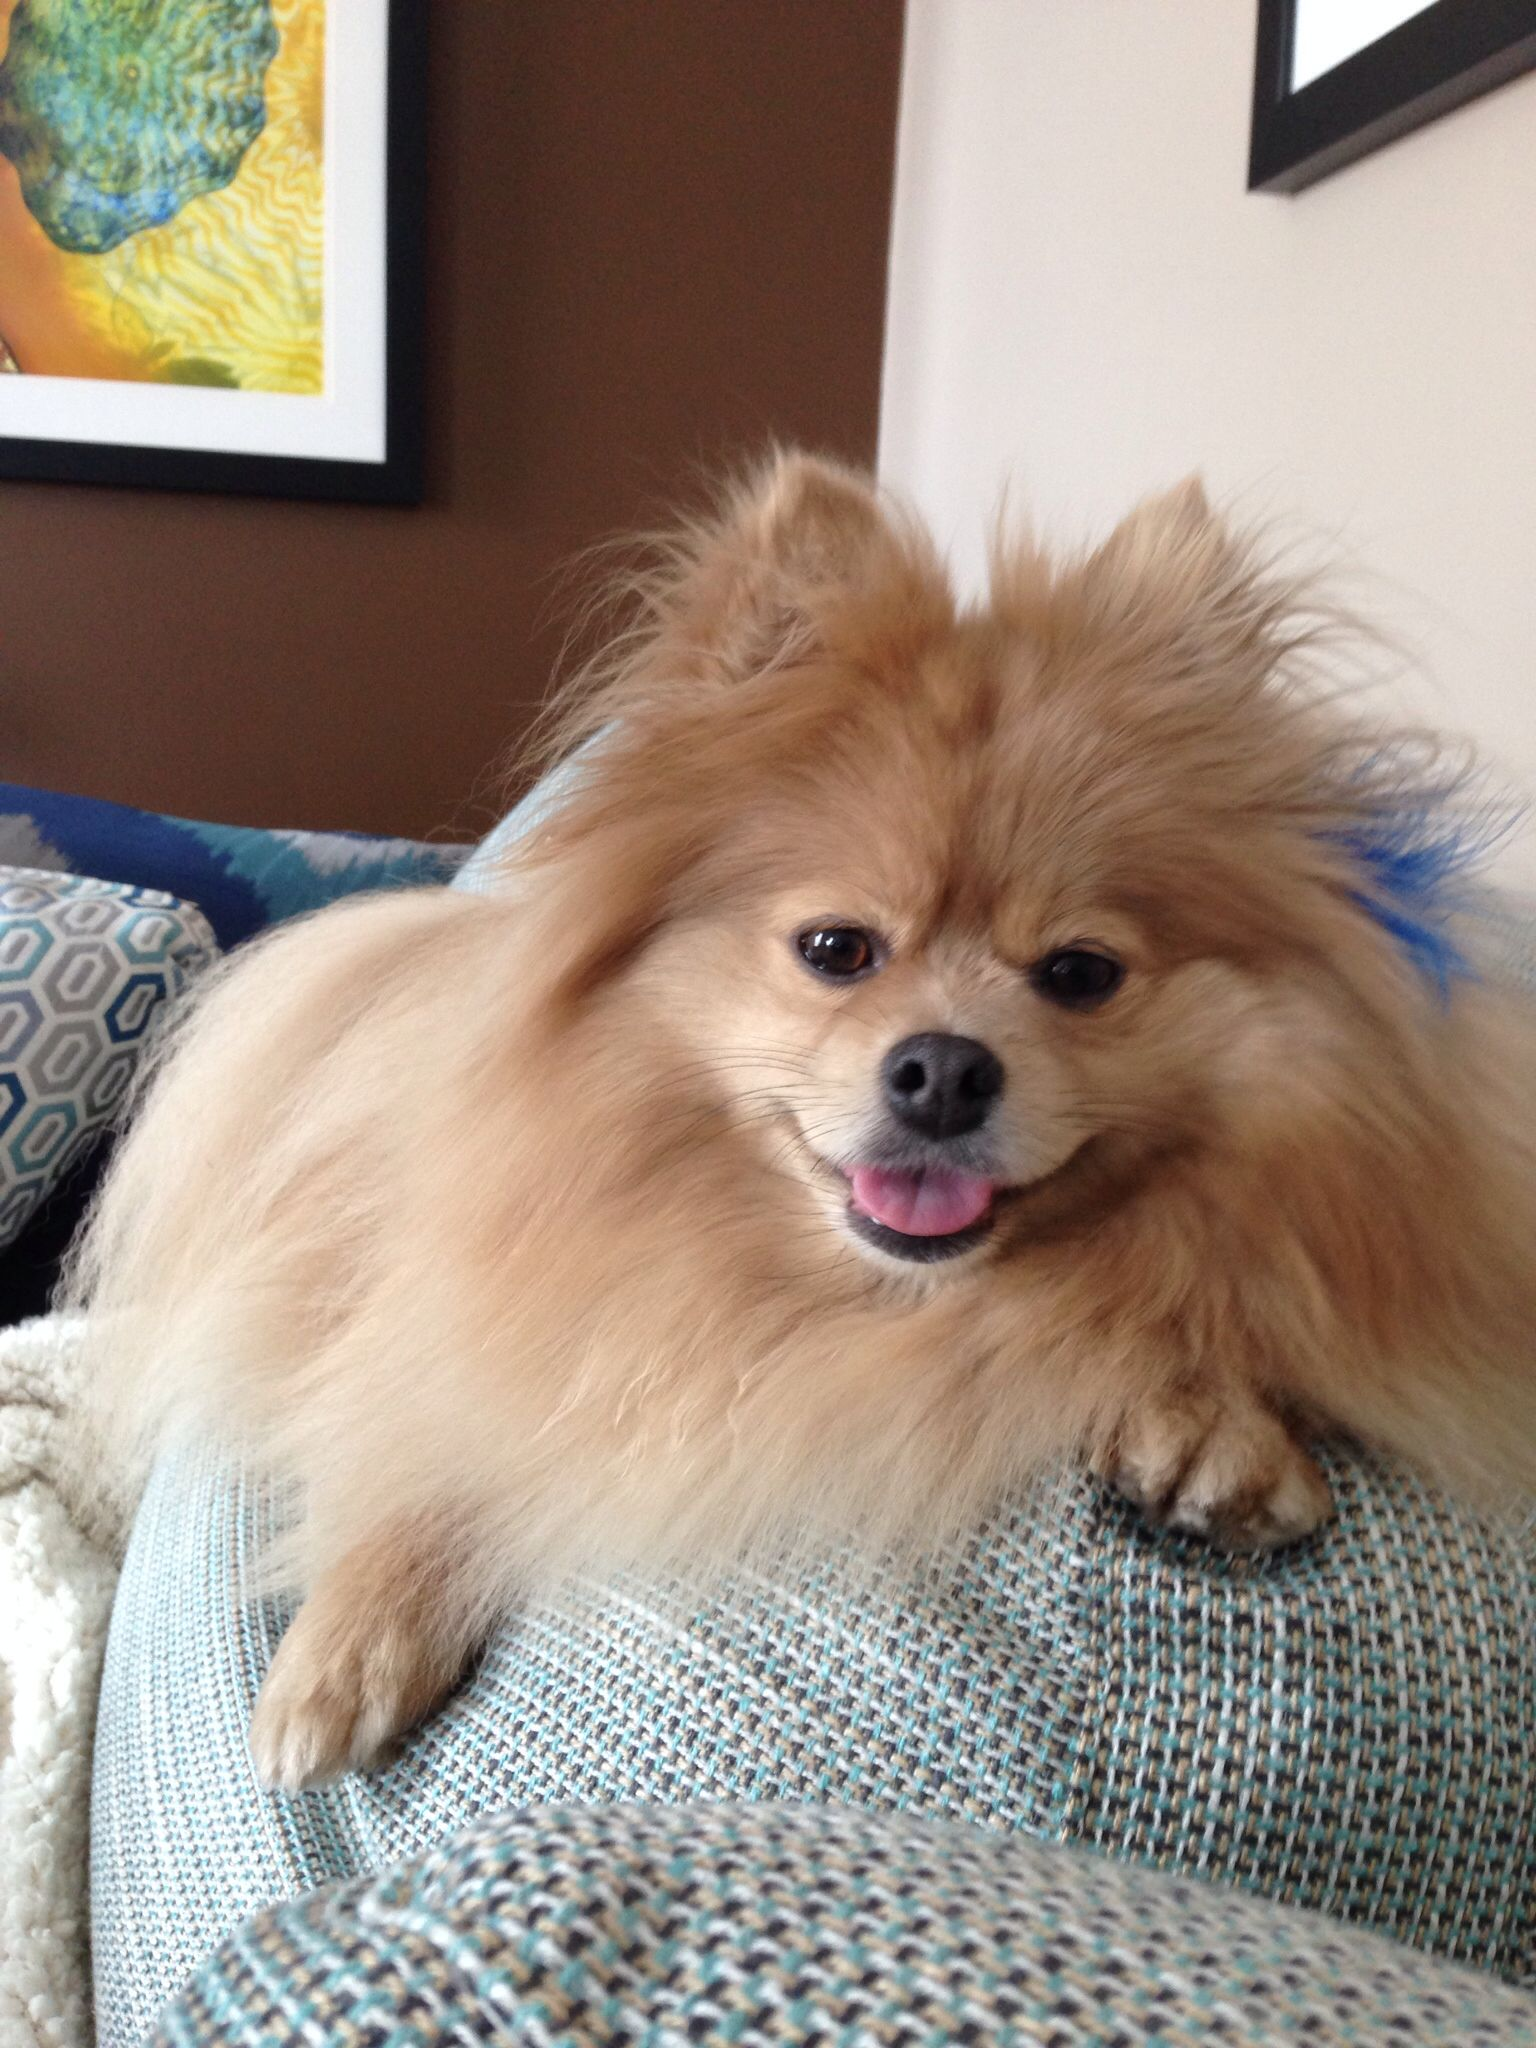 Leo Adorable Pomeranian Dogs Rule Pinterest Pomeranians - Someone should have told this dog owner that pomeranians melt in water